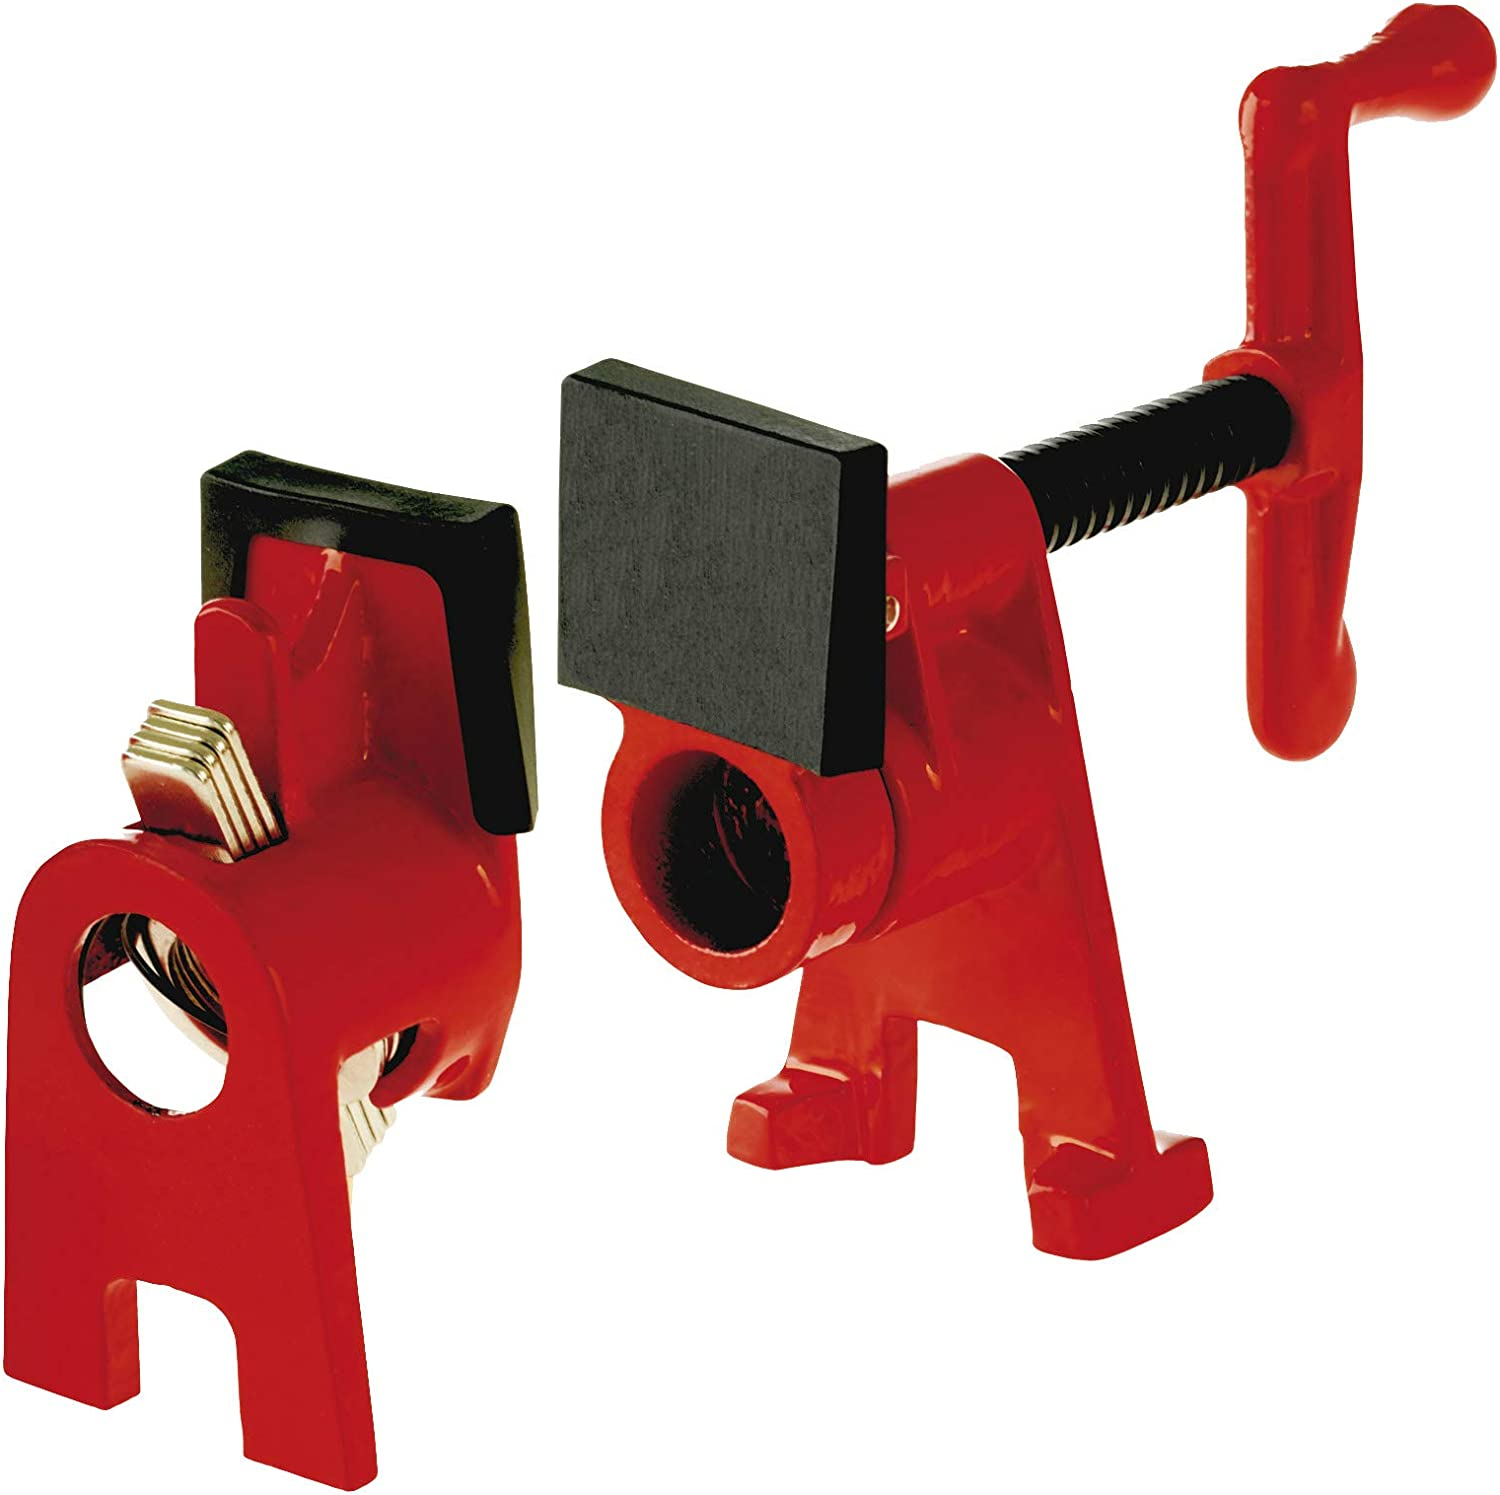 Bessey BPC-H34 3/4-Inch H Style Pipe Clamp, red - -